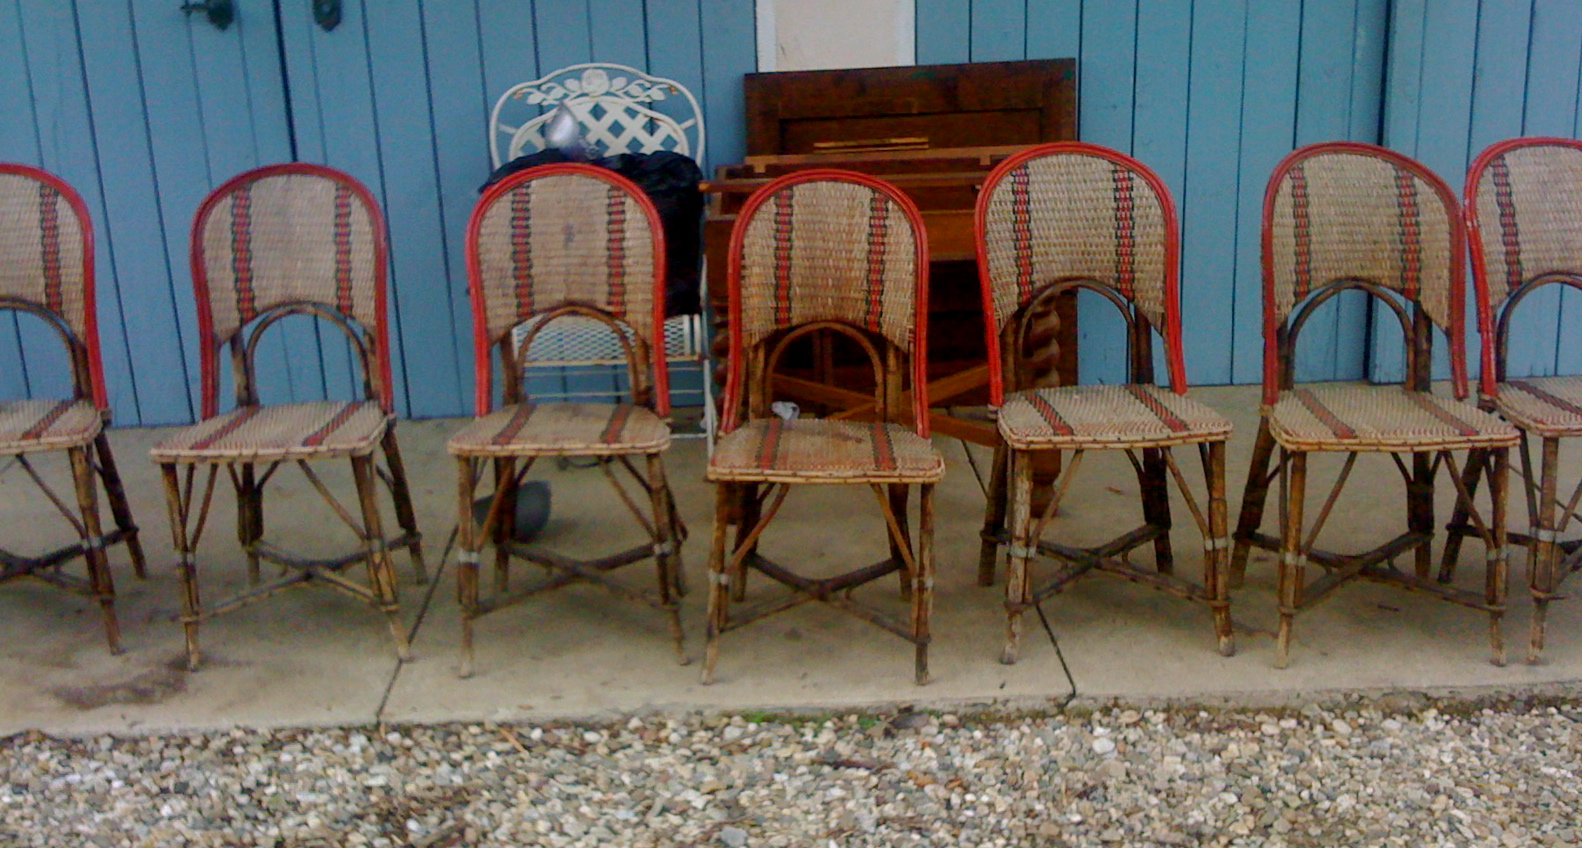 The Set Of Chairs In My Yard. U003e